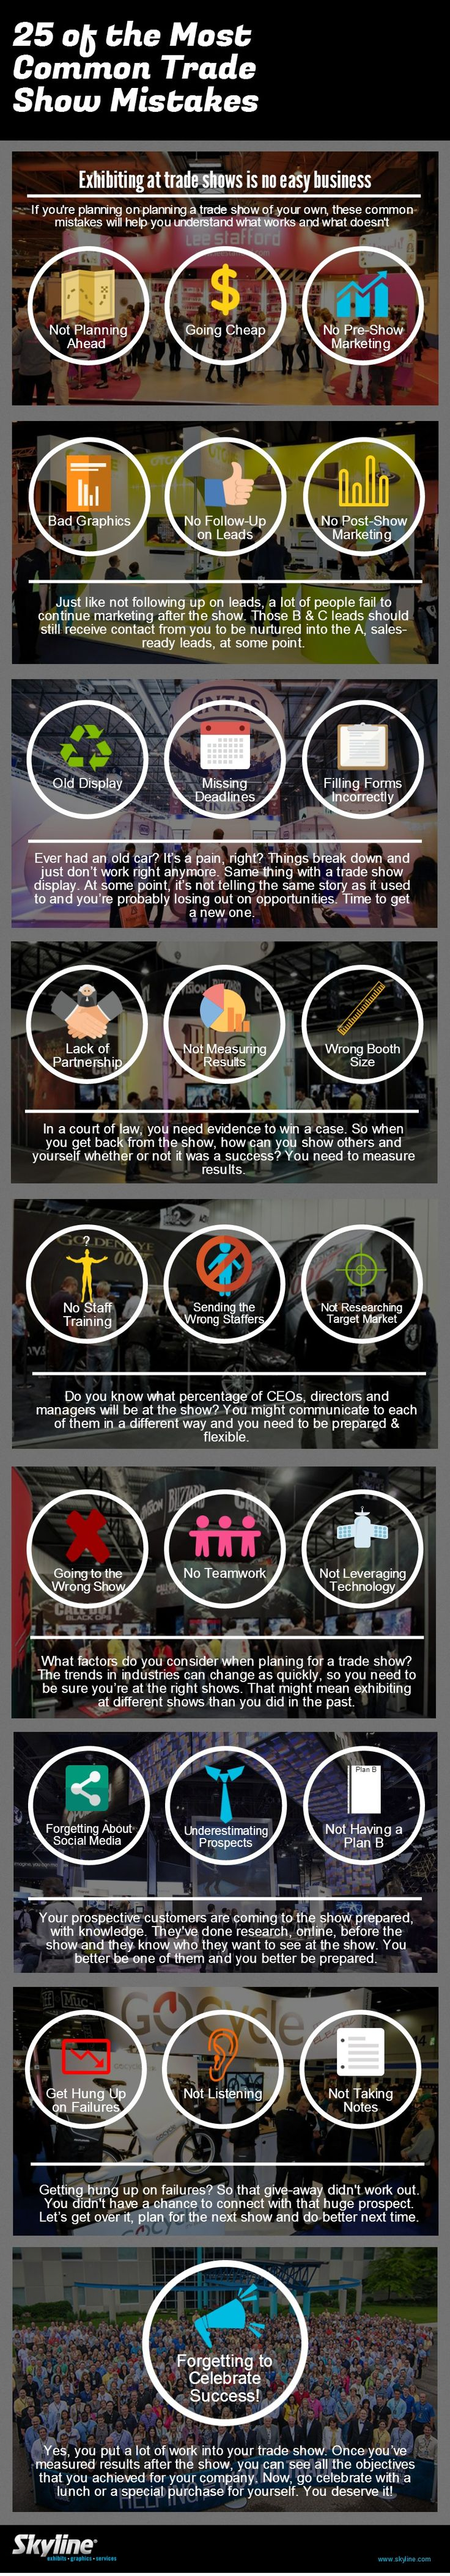 25 of the Most Common Trade Show Mistakes #skylineexhibits #infographic